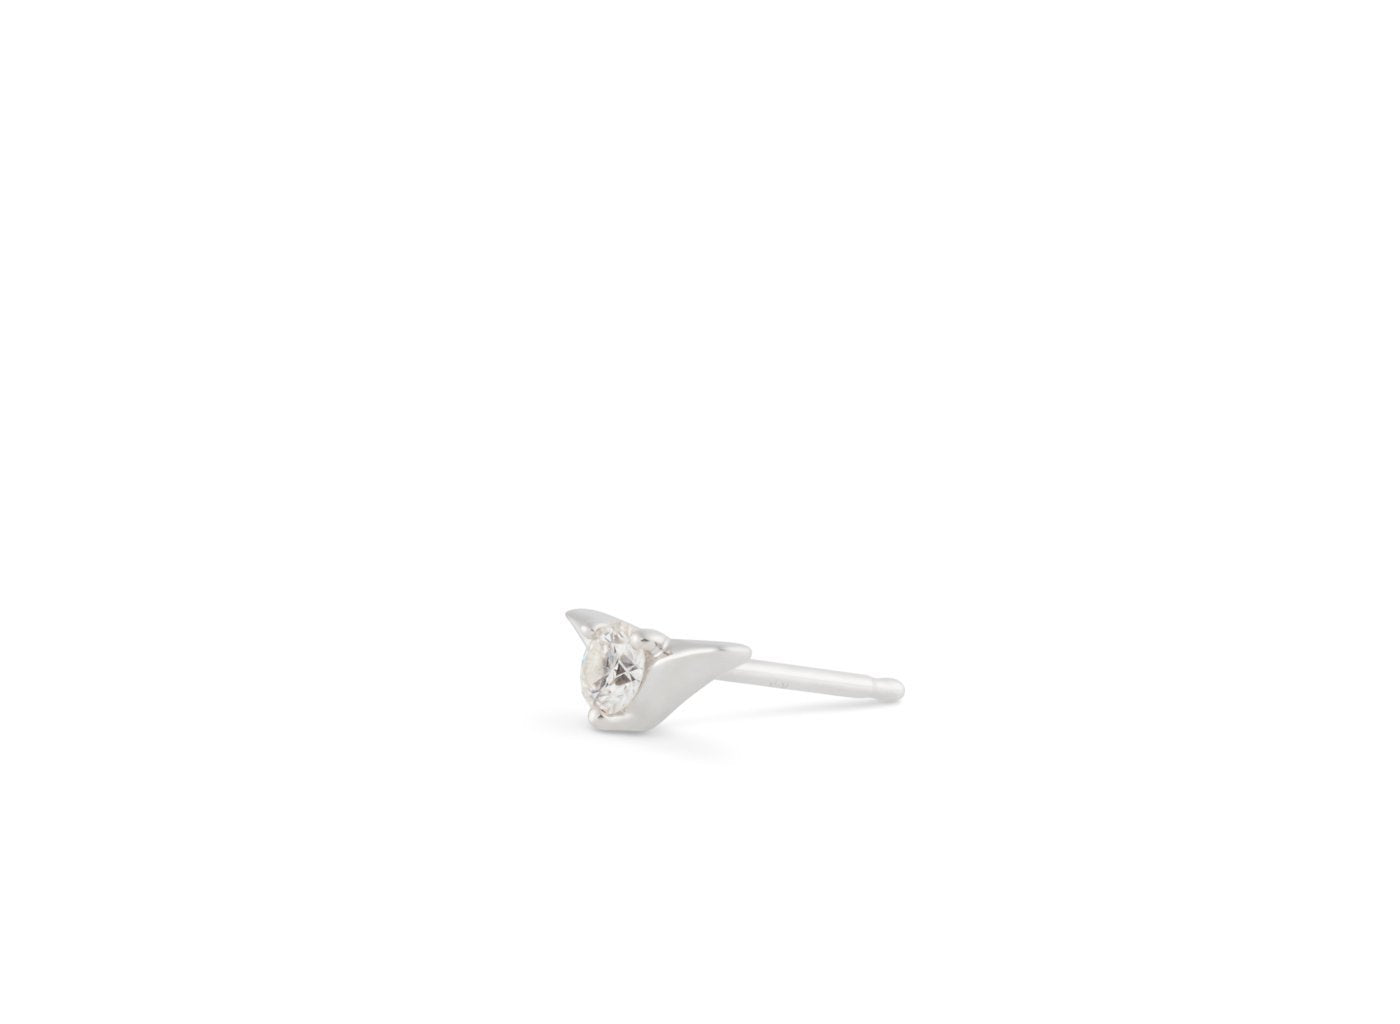 Side view of Chevron 1/8 carat earring with white diamond